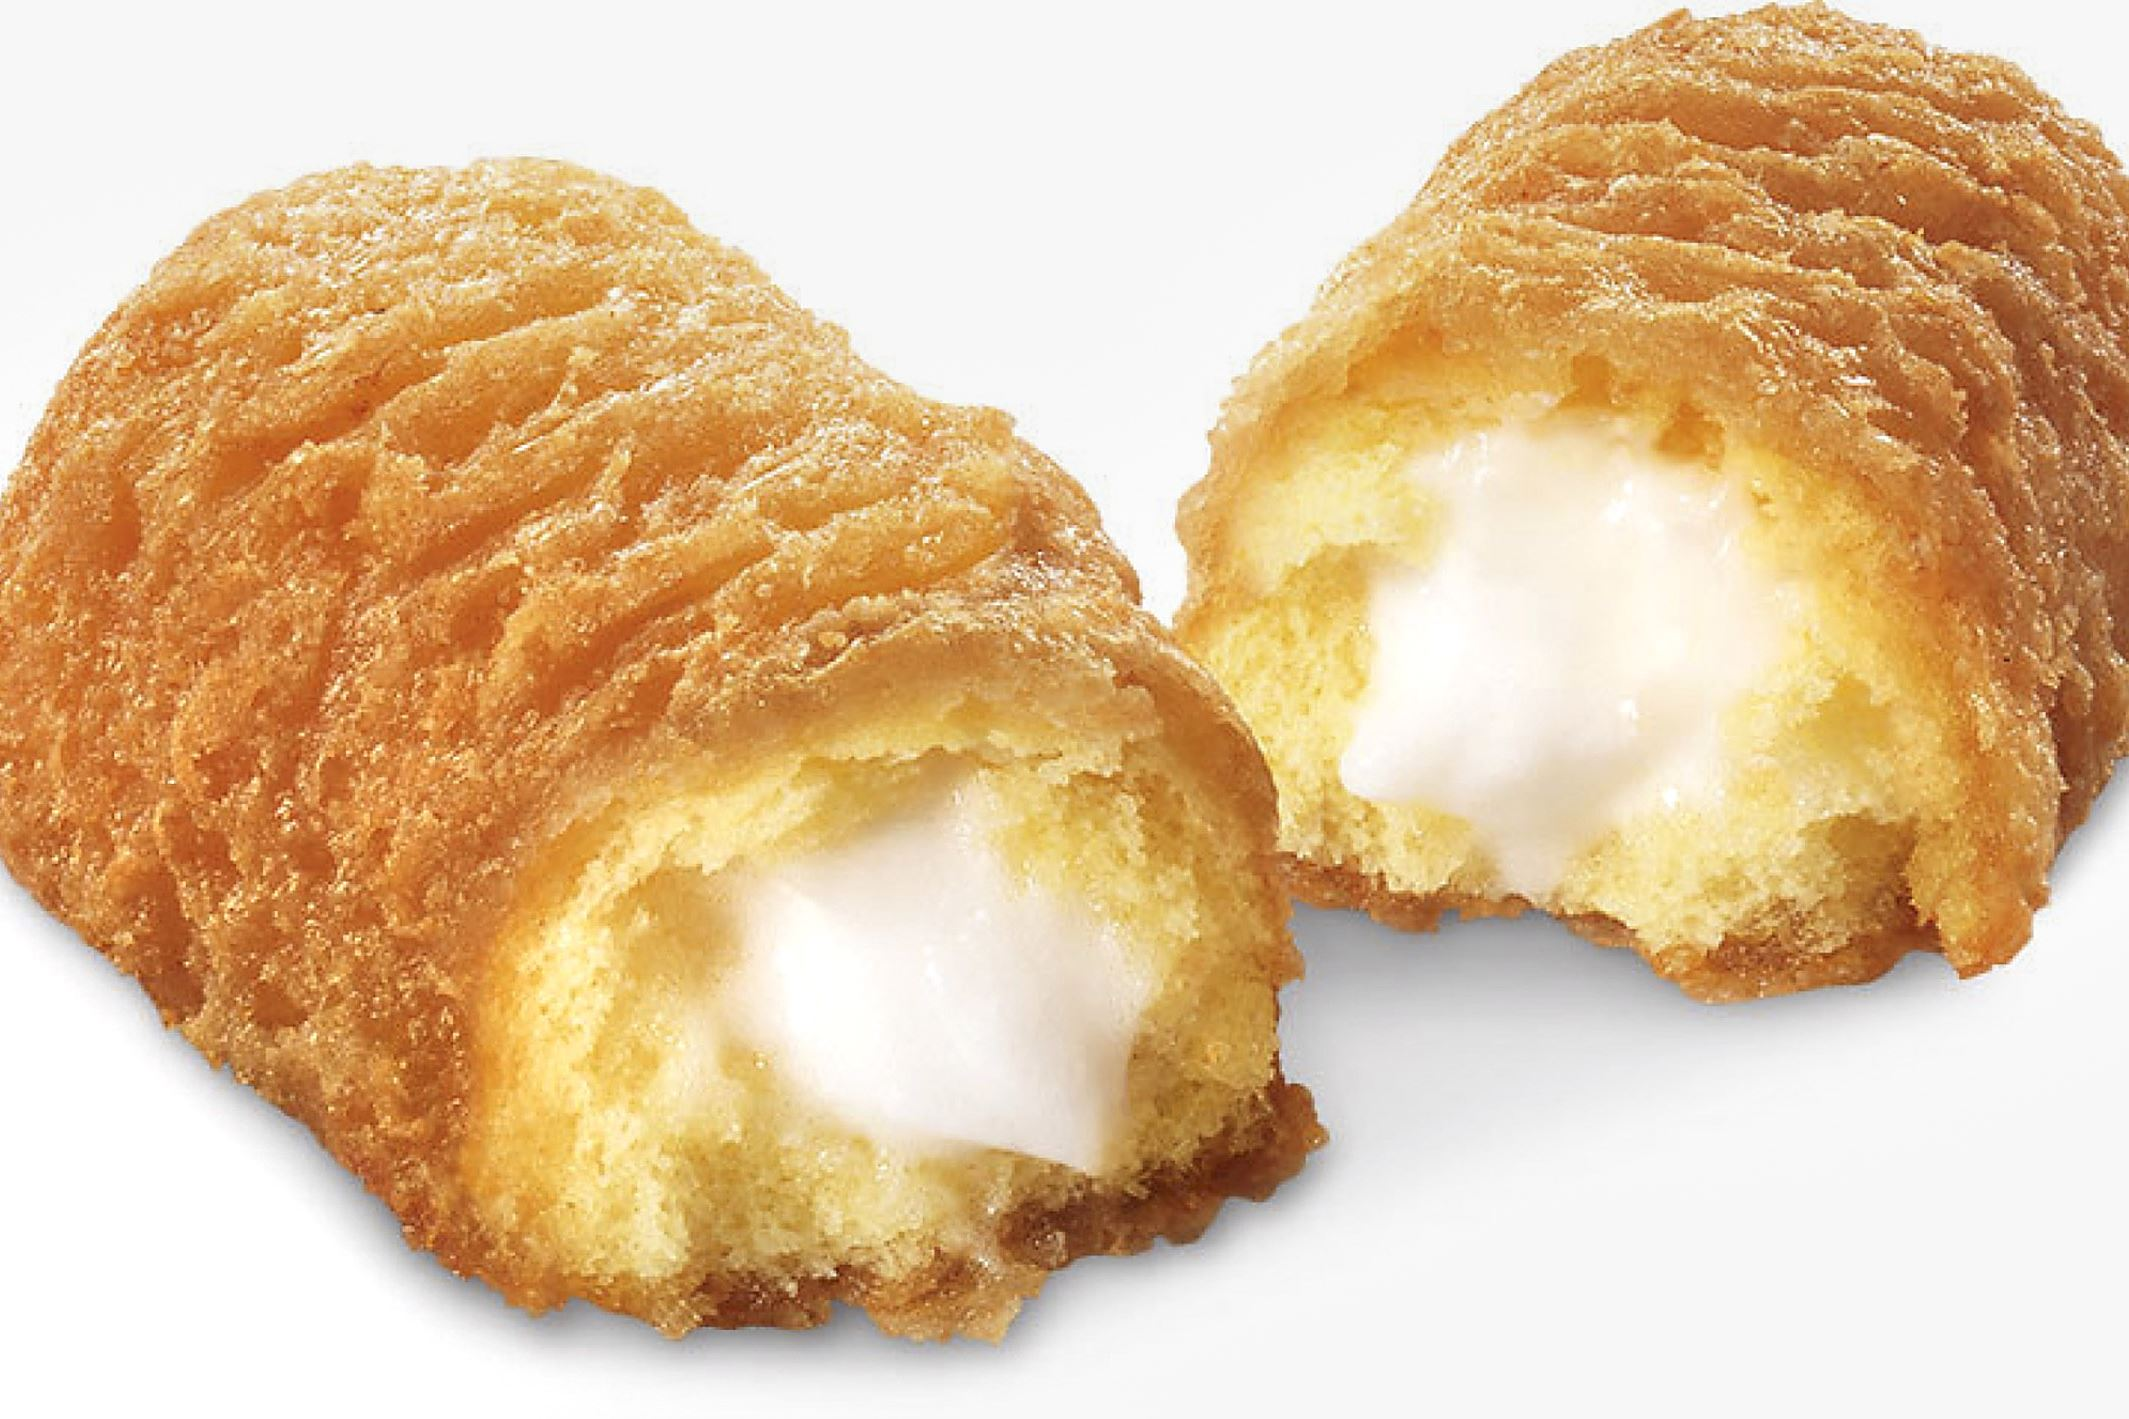 TWINKIES061201-2 Long John Silvers will offer free deep-fried Twinkies to customers on June 21 to celebrate the first day of summer.